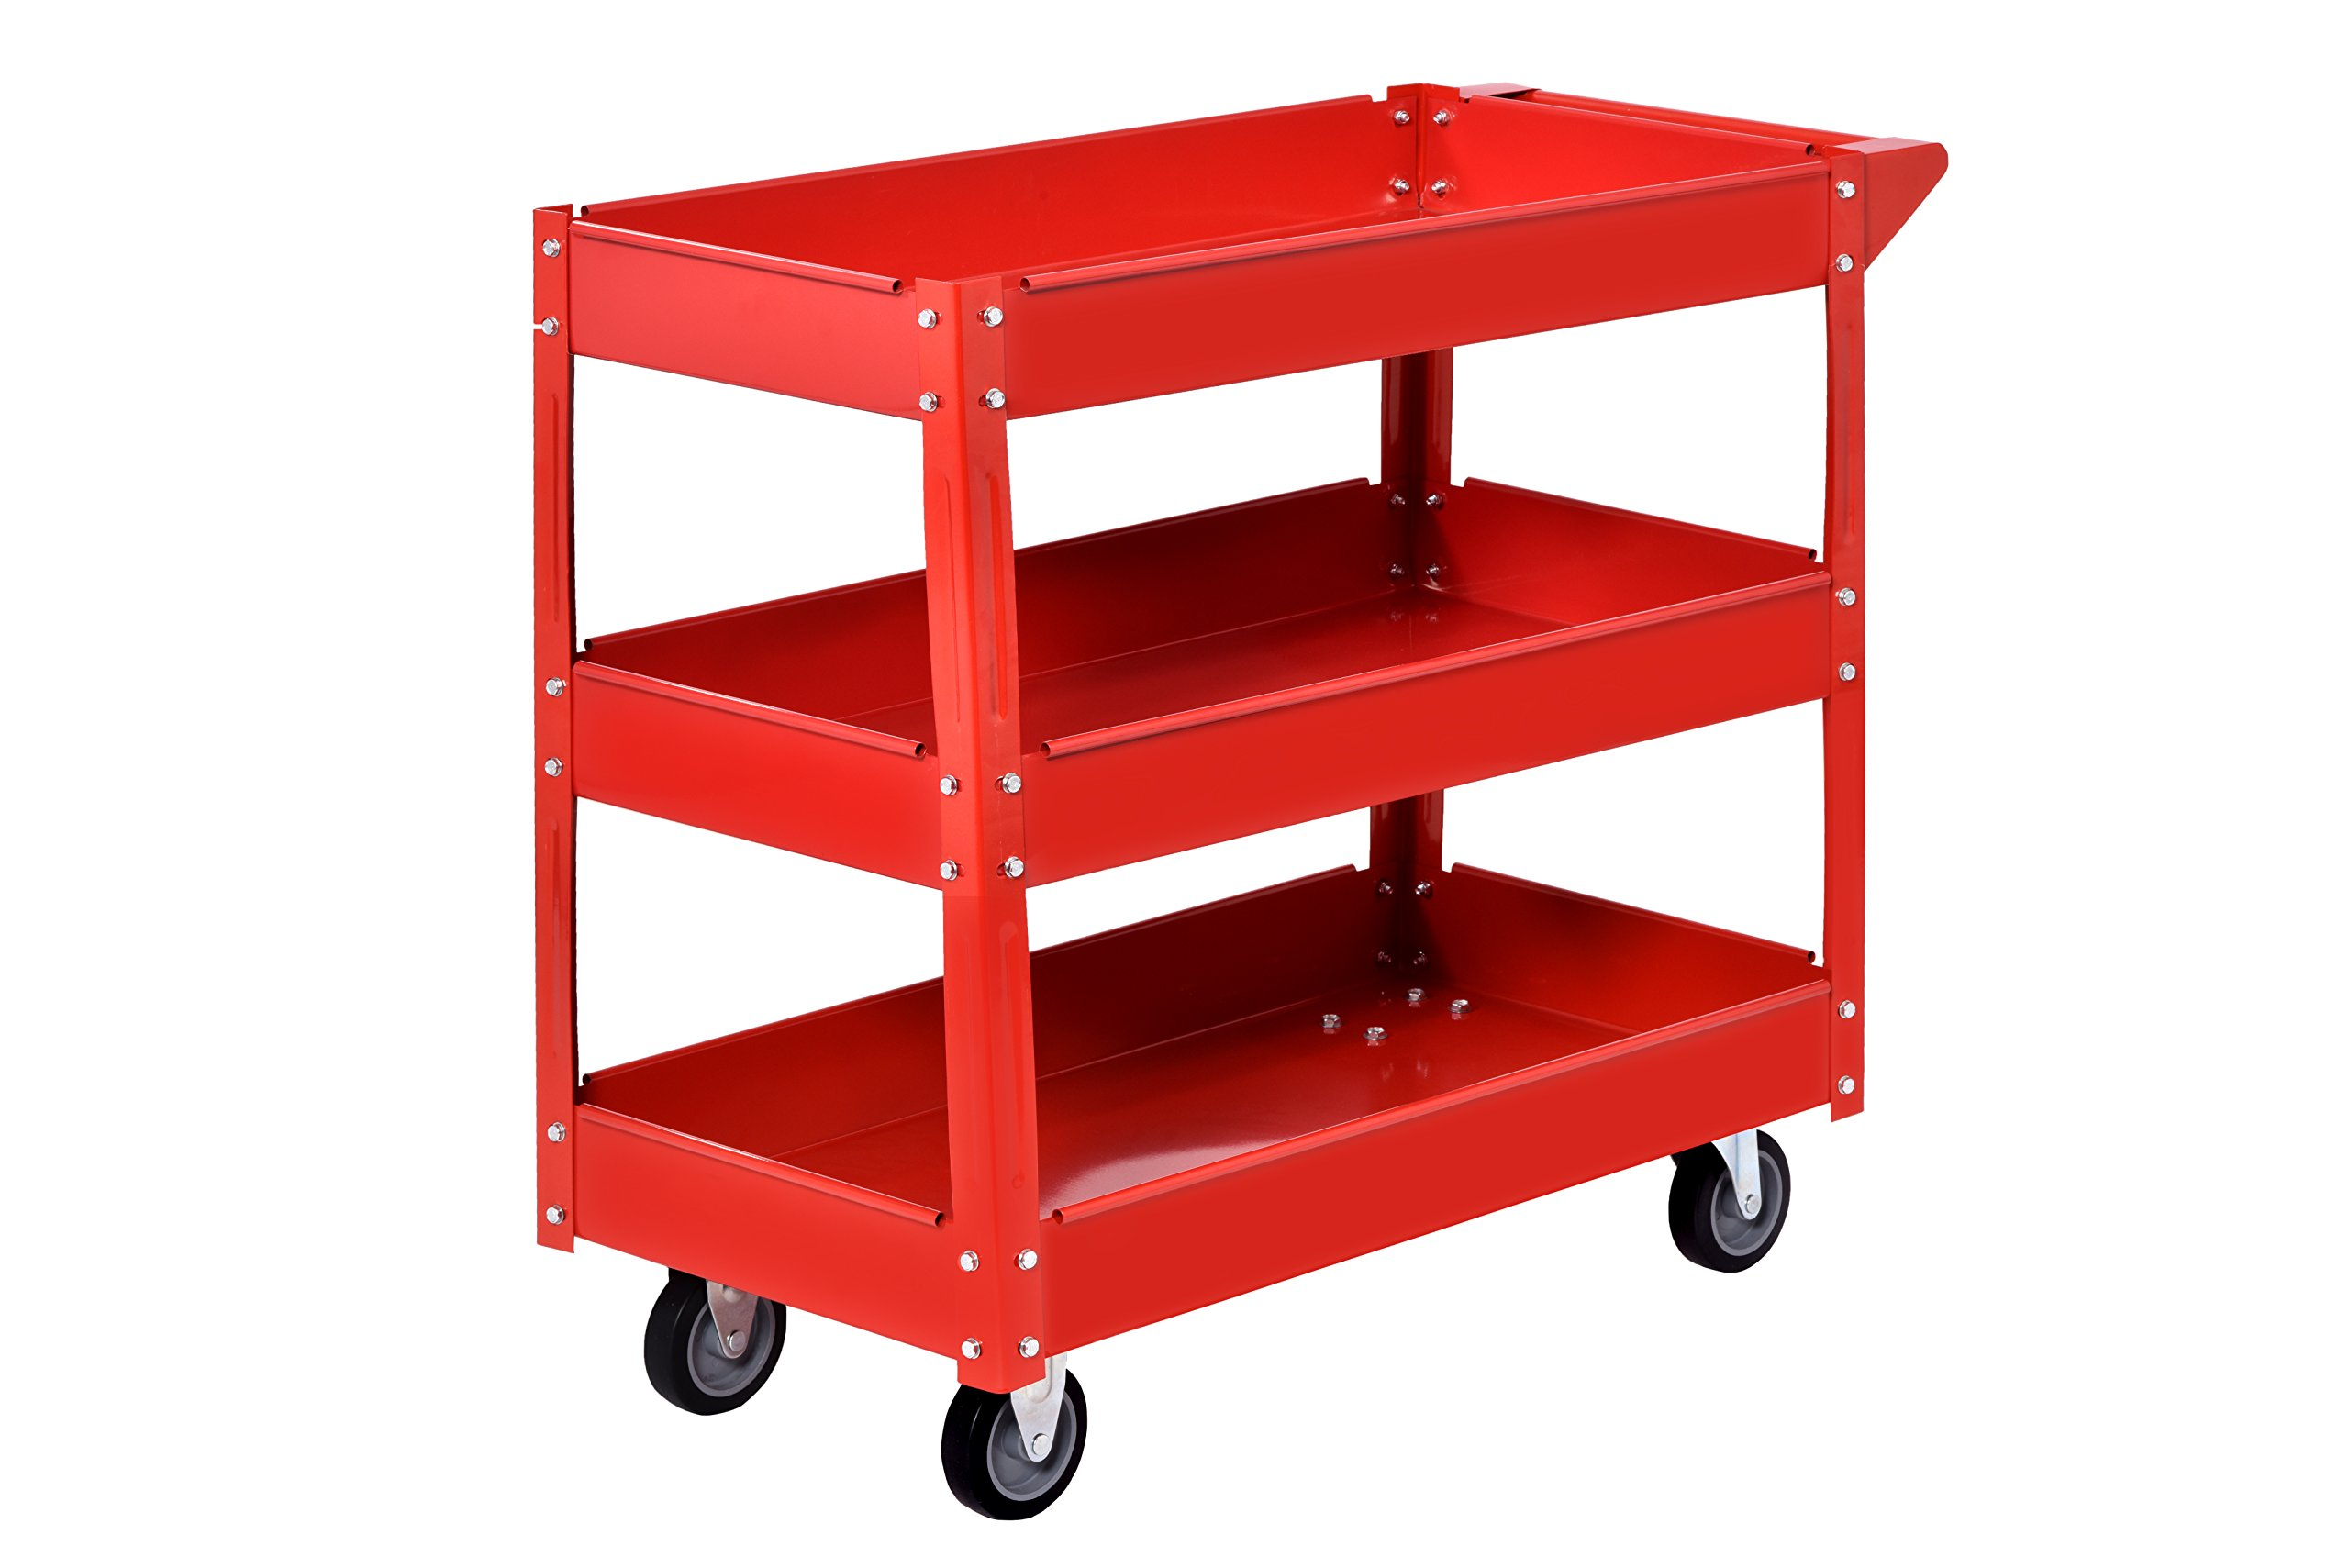 Muscle Carts SC3216-RED Teel Industrial Commercial Service Cart, 220 lb. by Muscle Carts (Image #3)